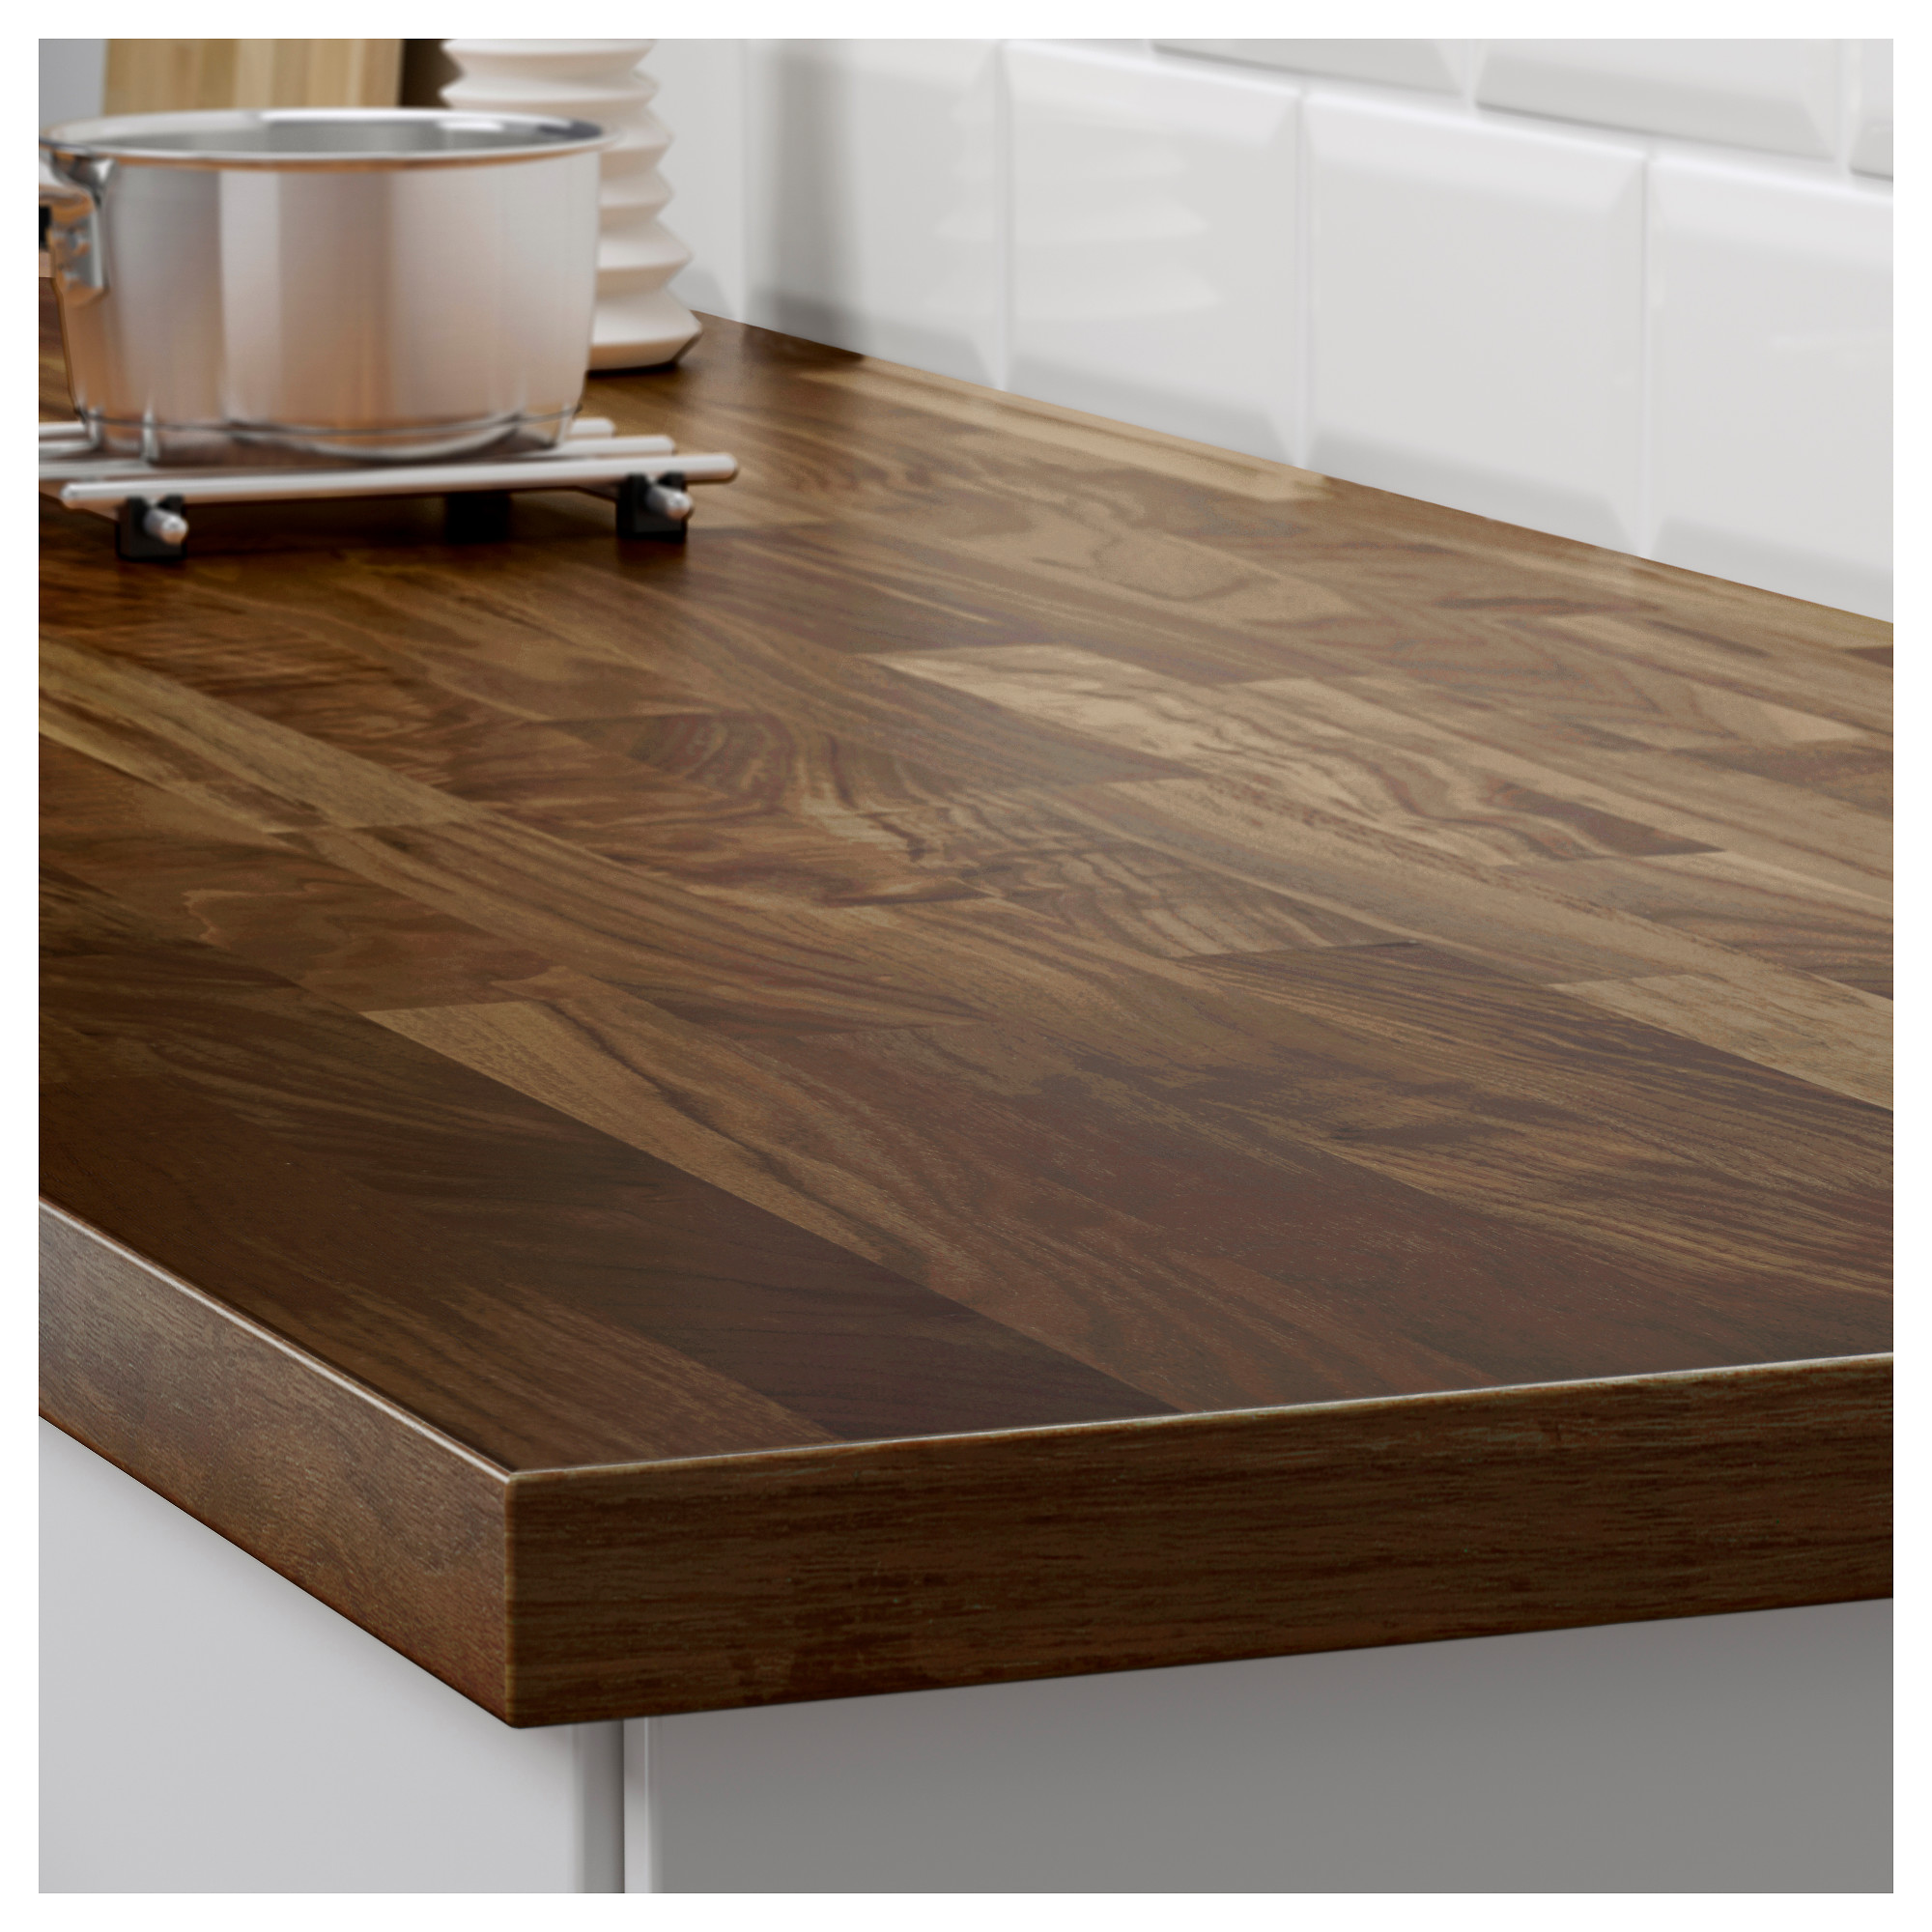 KARLBY Countertop For Kitchen Island   Walnut   IKEA